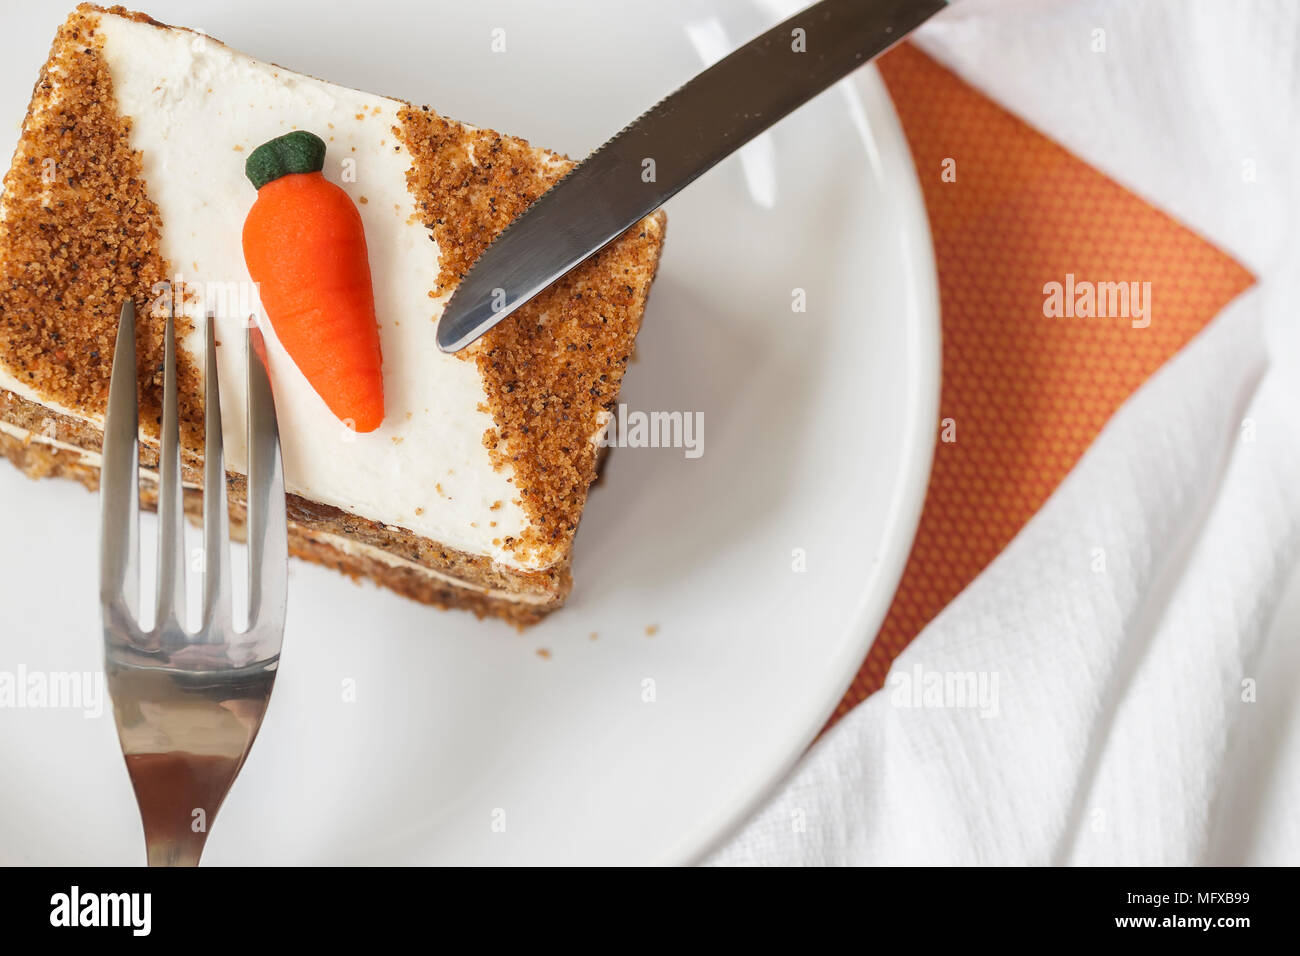 Homemade carrot cake with carrot decorations on white plate, fork, knife, napkin, top view. - Stock Image